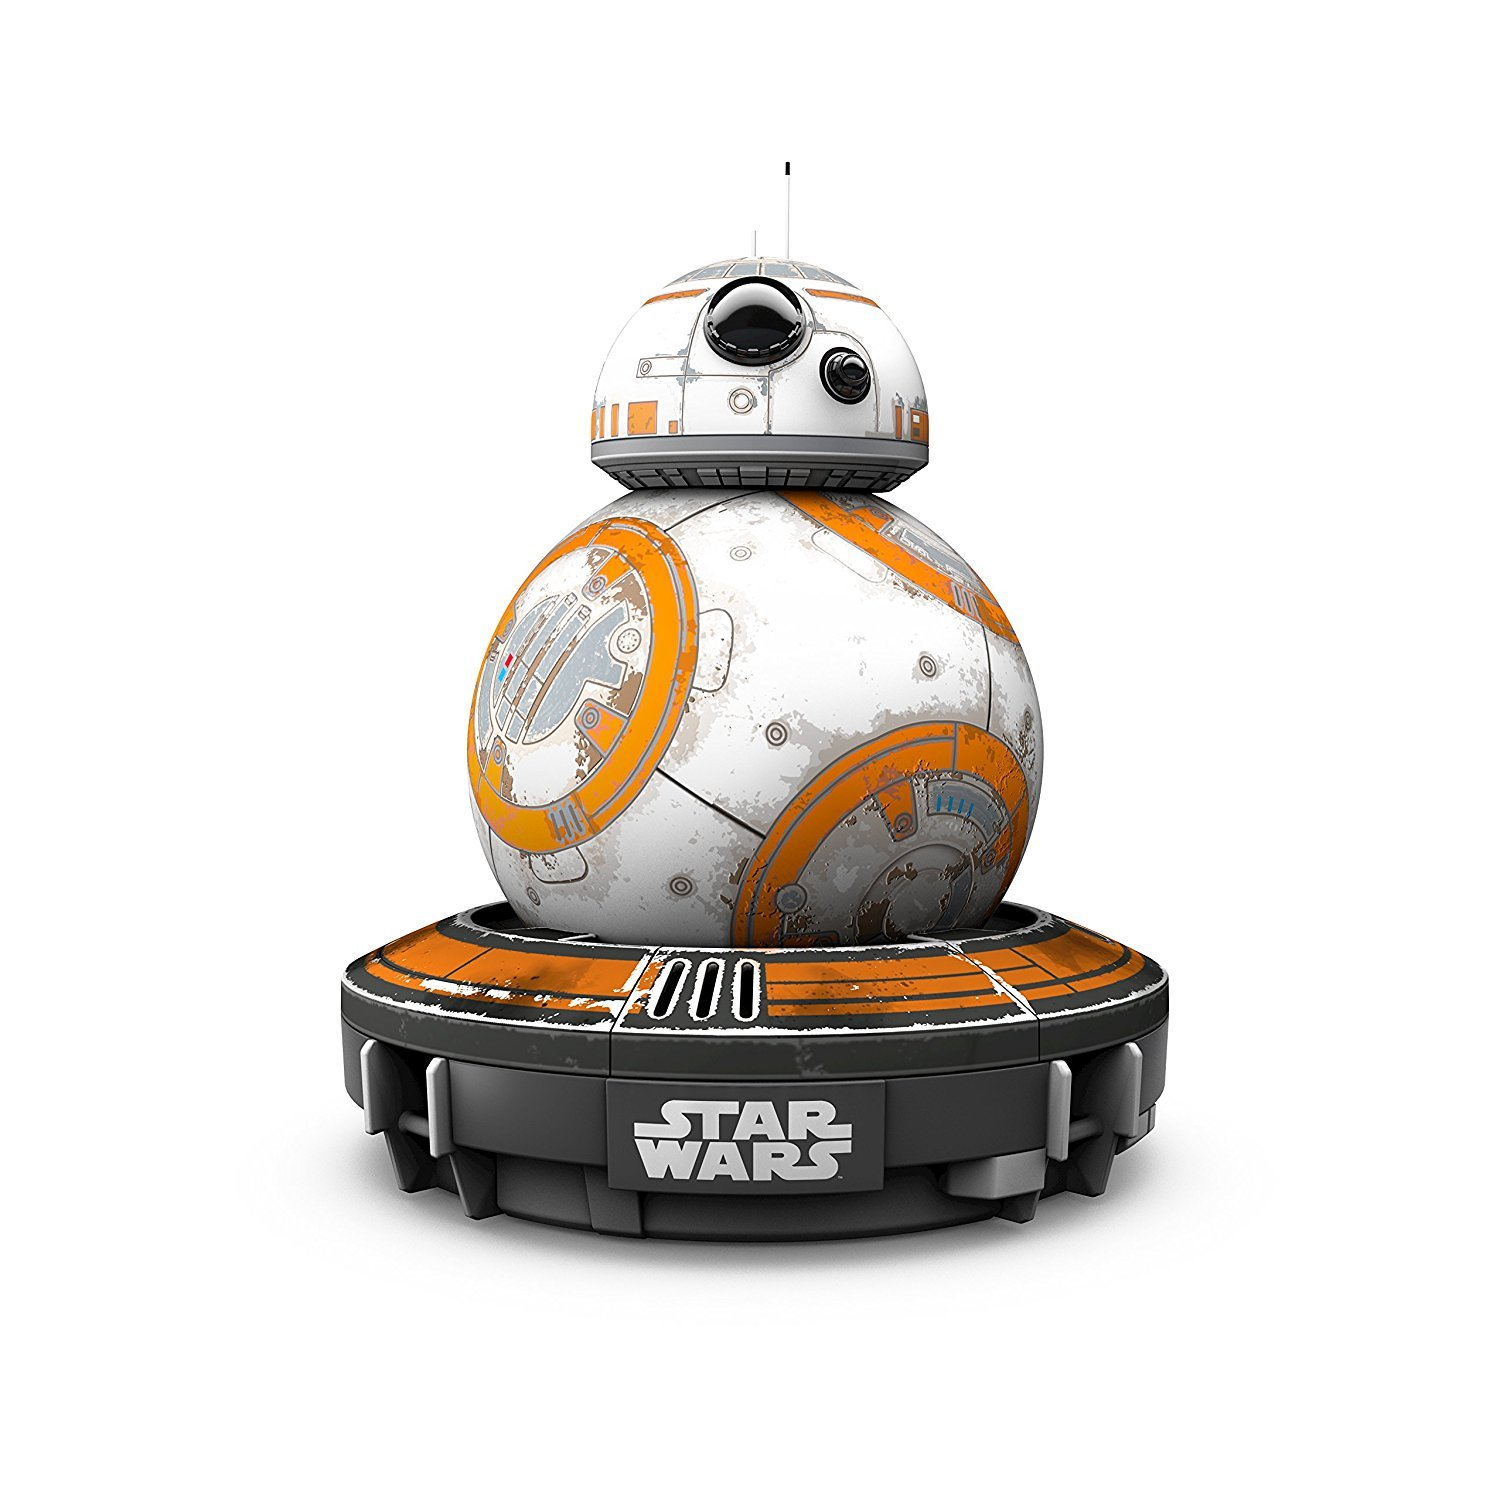 Special Edition Battle-Worn BB-8 by Sphero with Force Band by Sphero (Image #2)